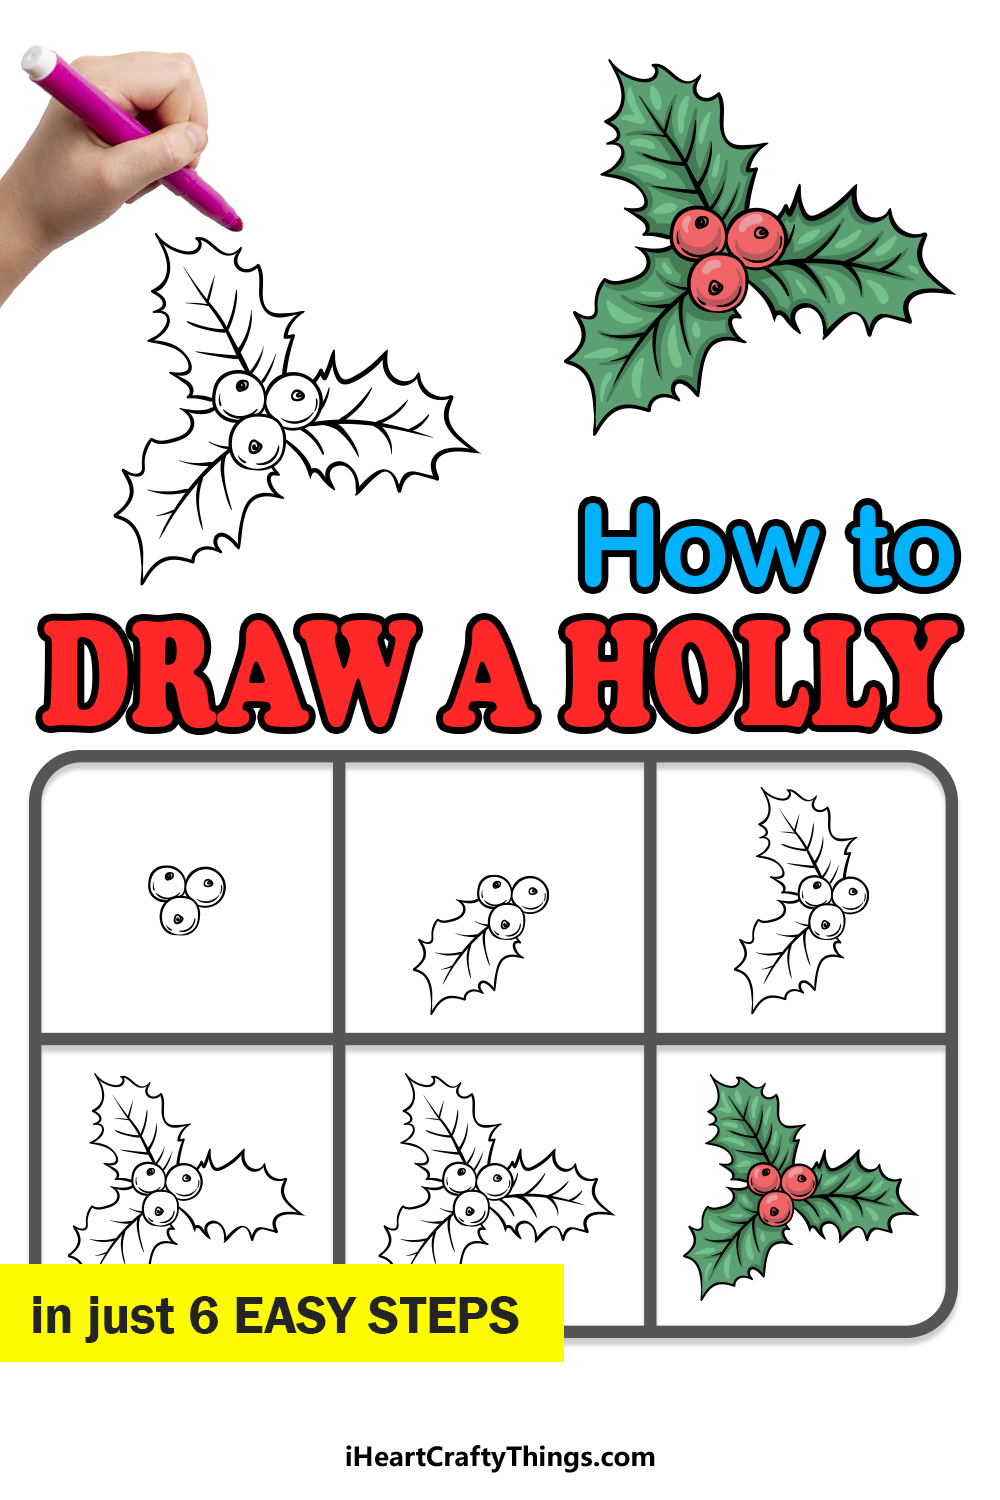 how to draw a holly in 6 easy steps